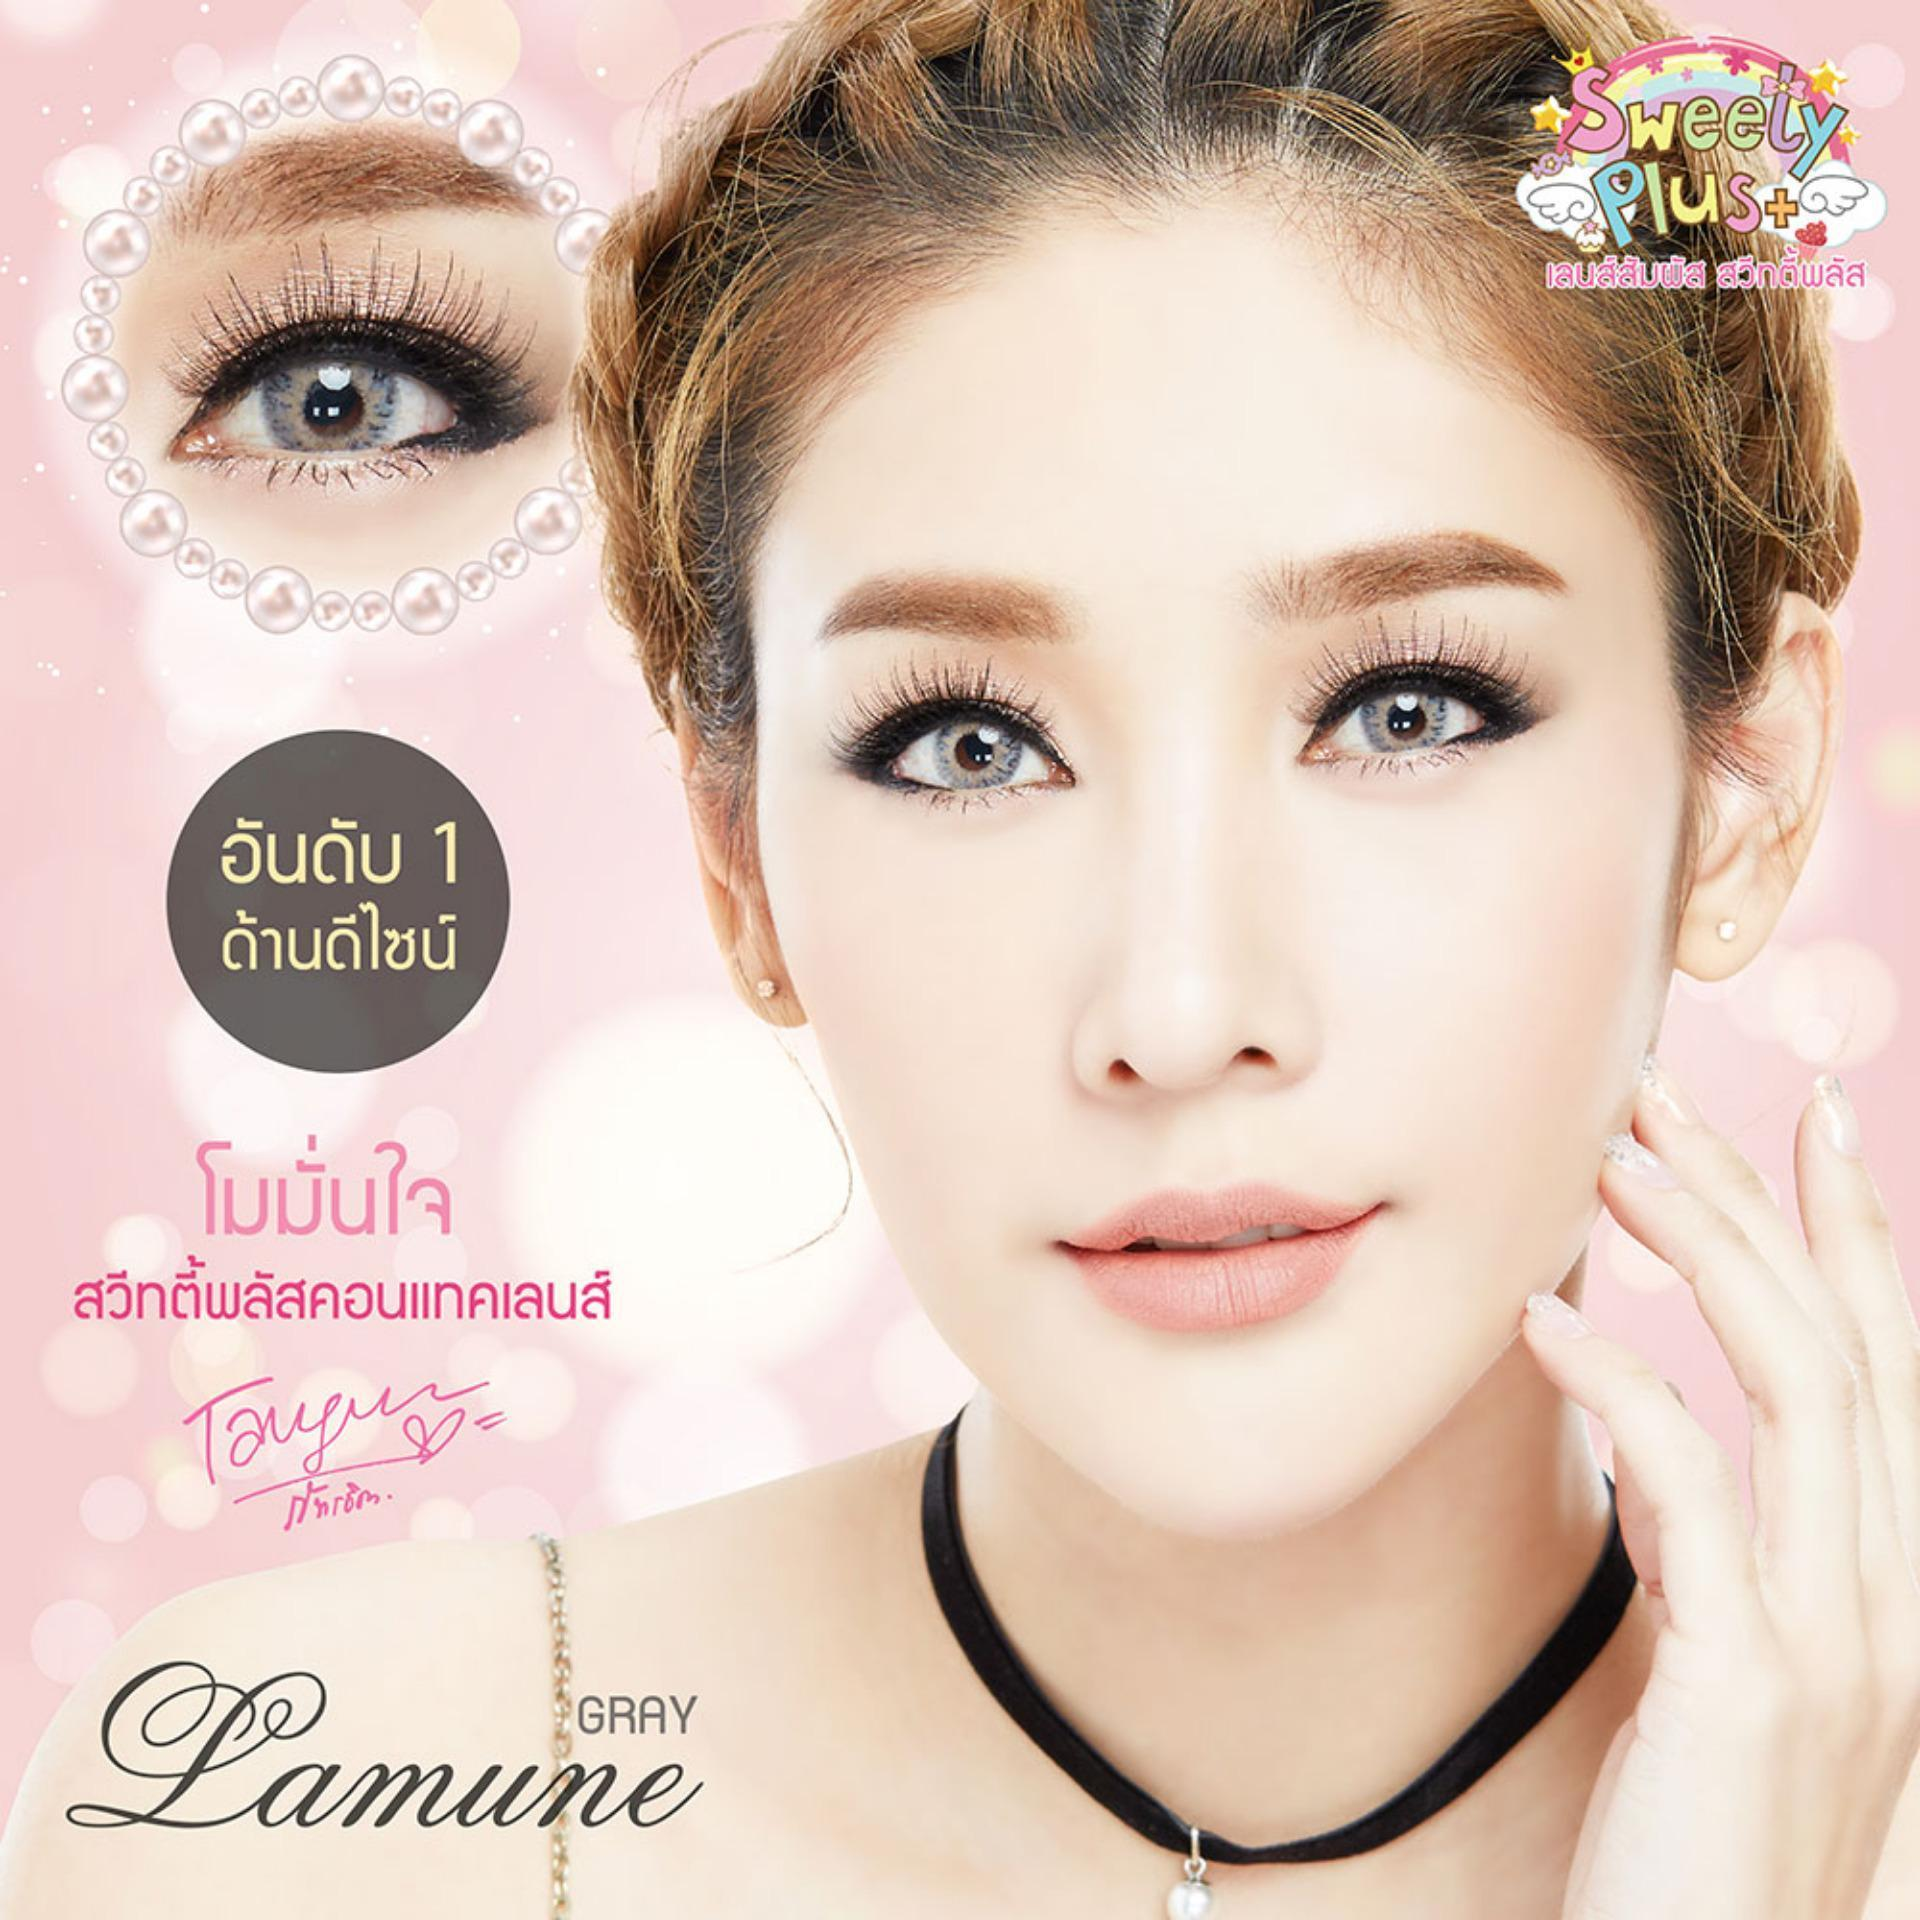 COLORED CONTACTS SWEETY LAMUNE GRAY - Lens Beauty Queen